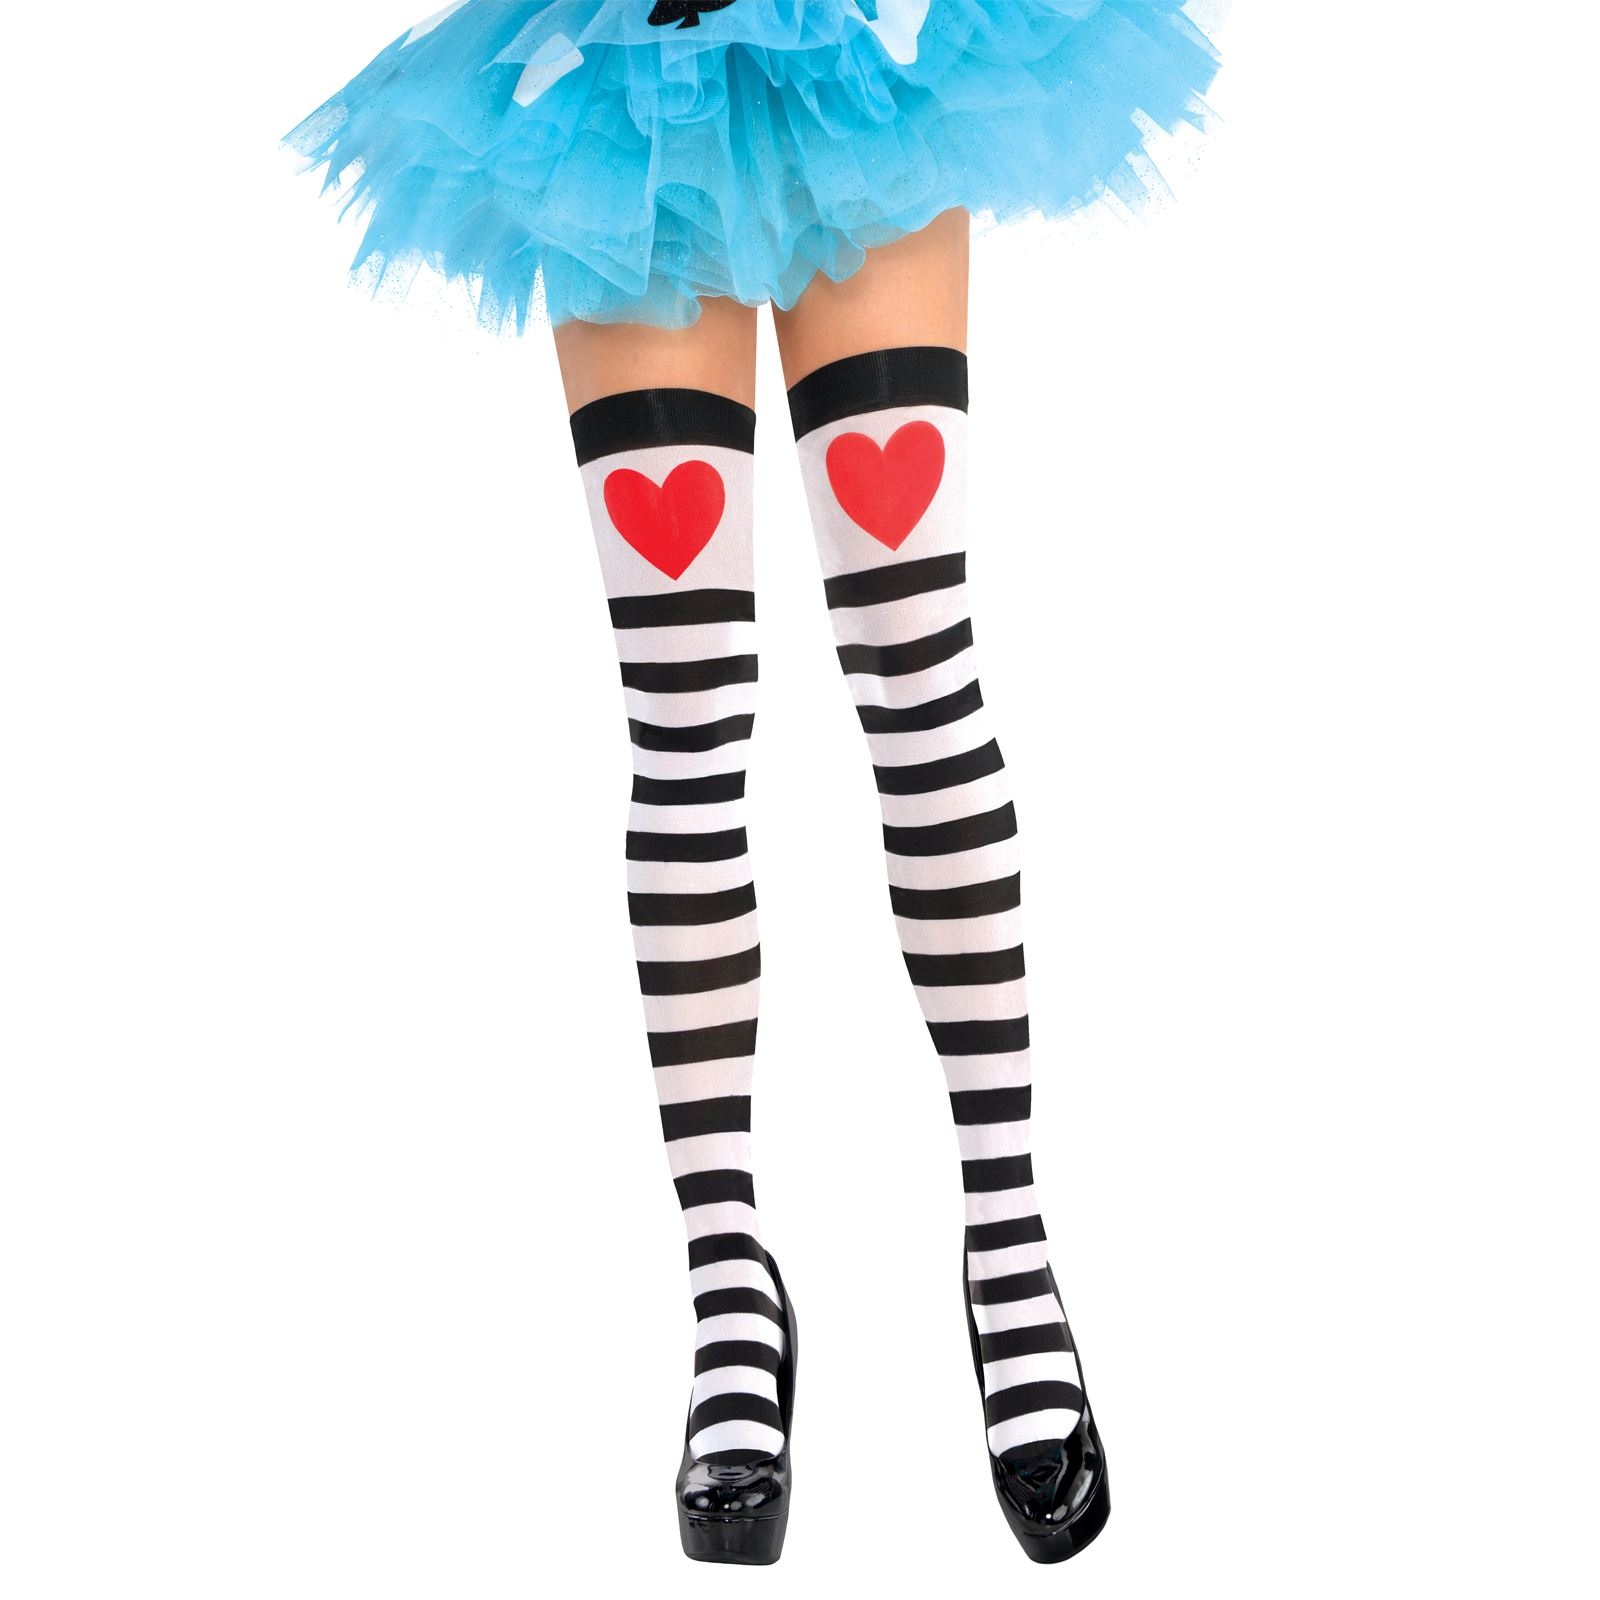 cee859f27 Ladies Queen Hearts Stockings Stripes Knee High Sexy Costume ...